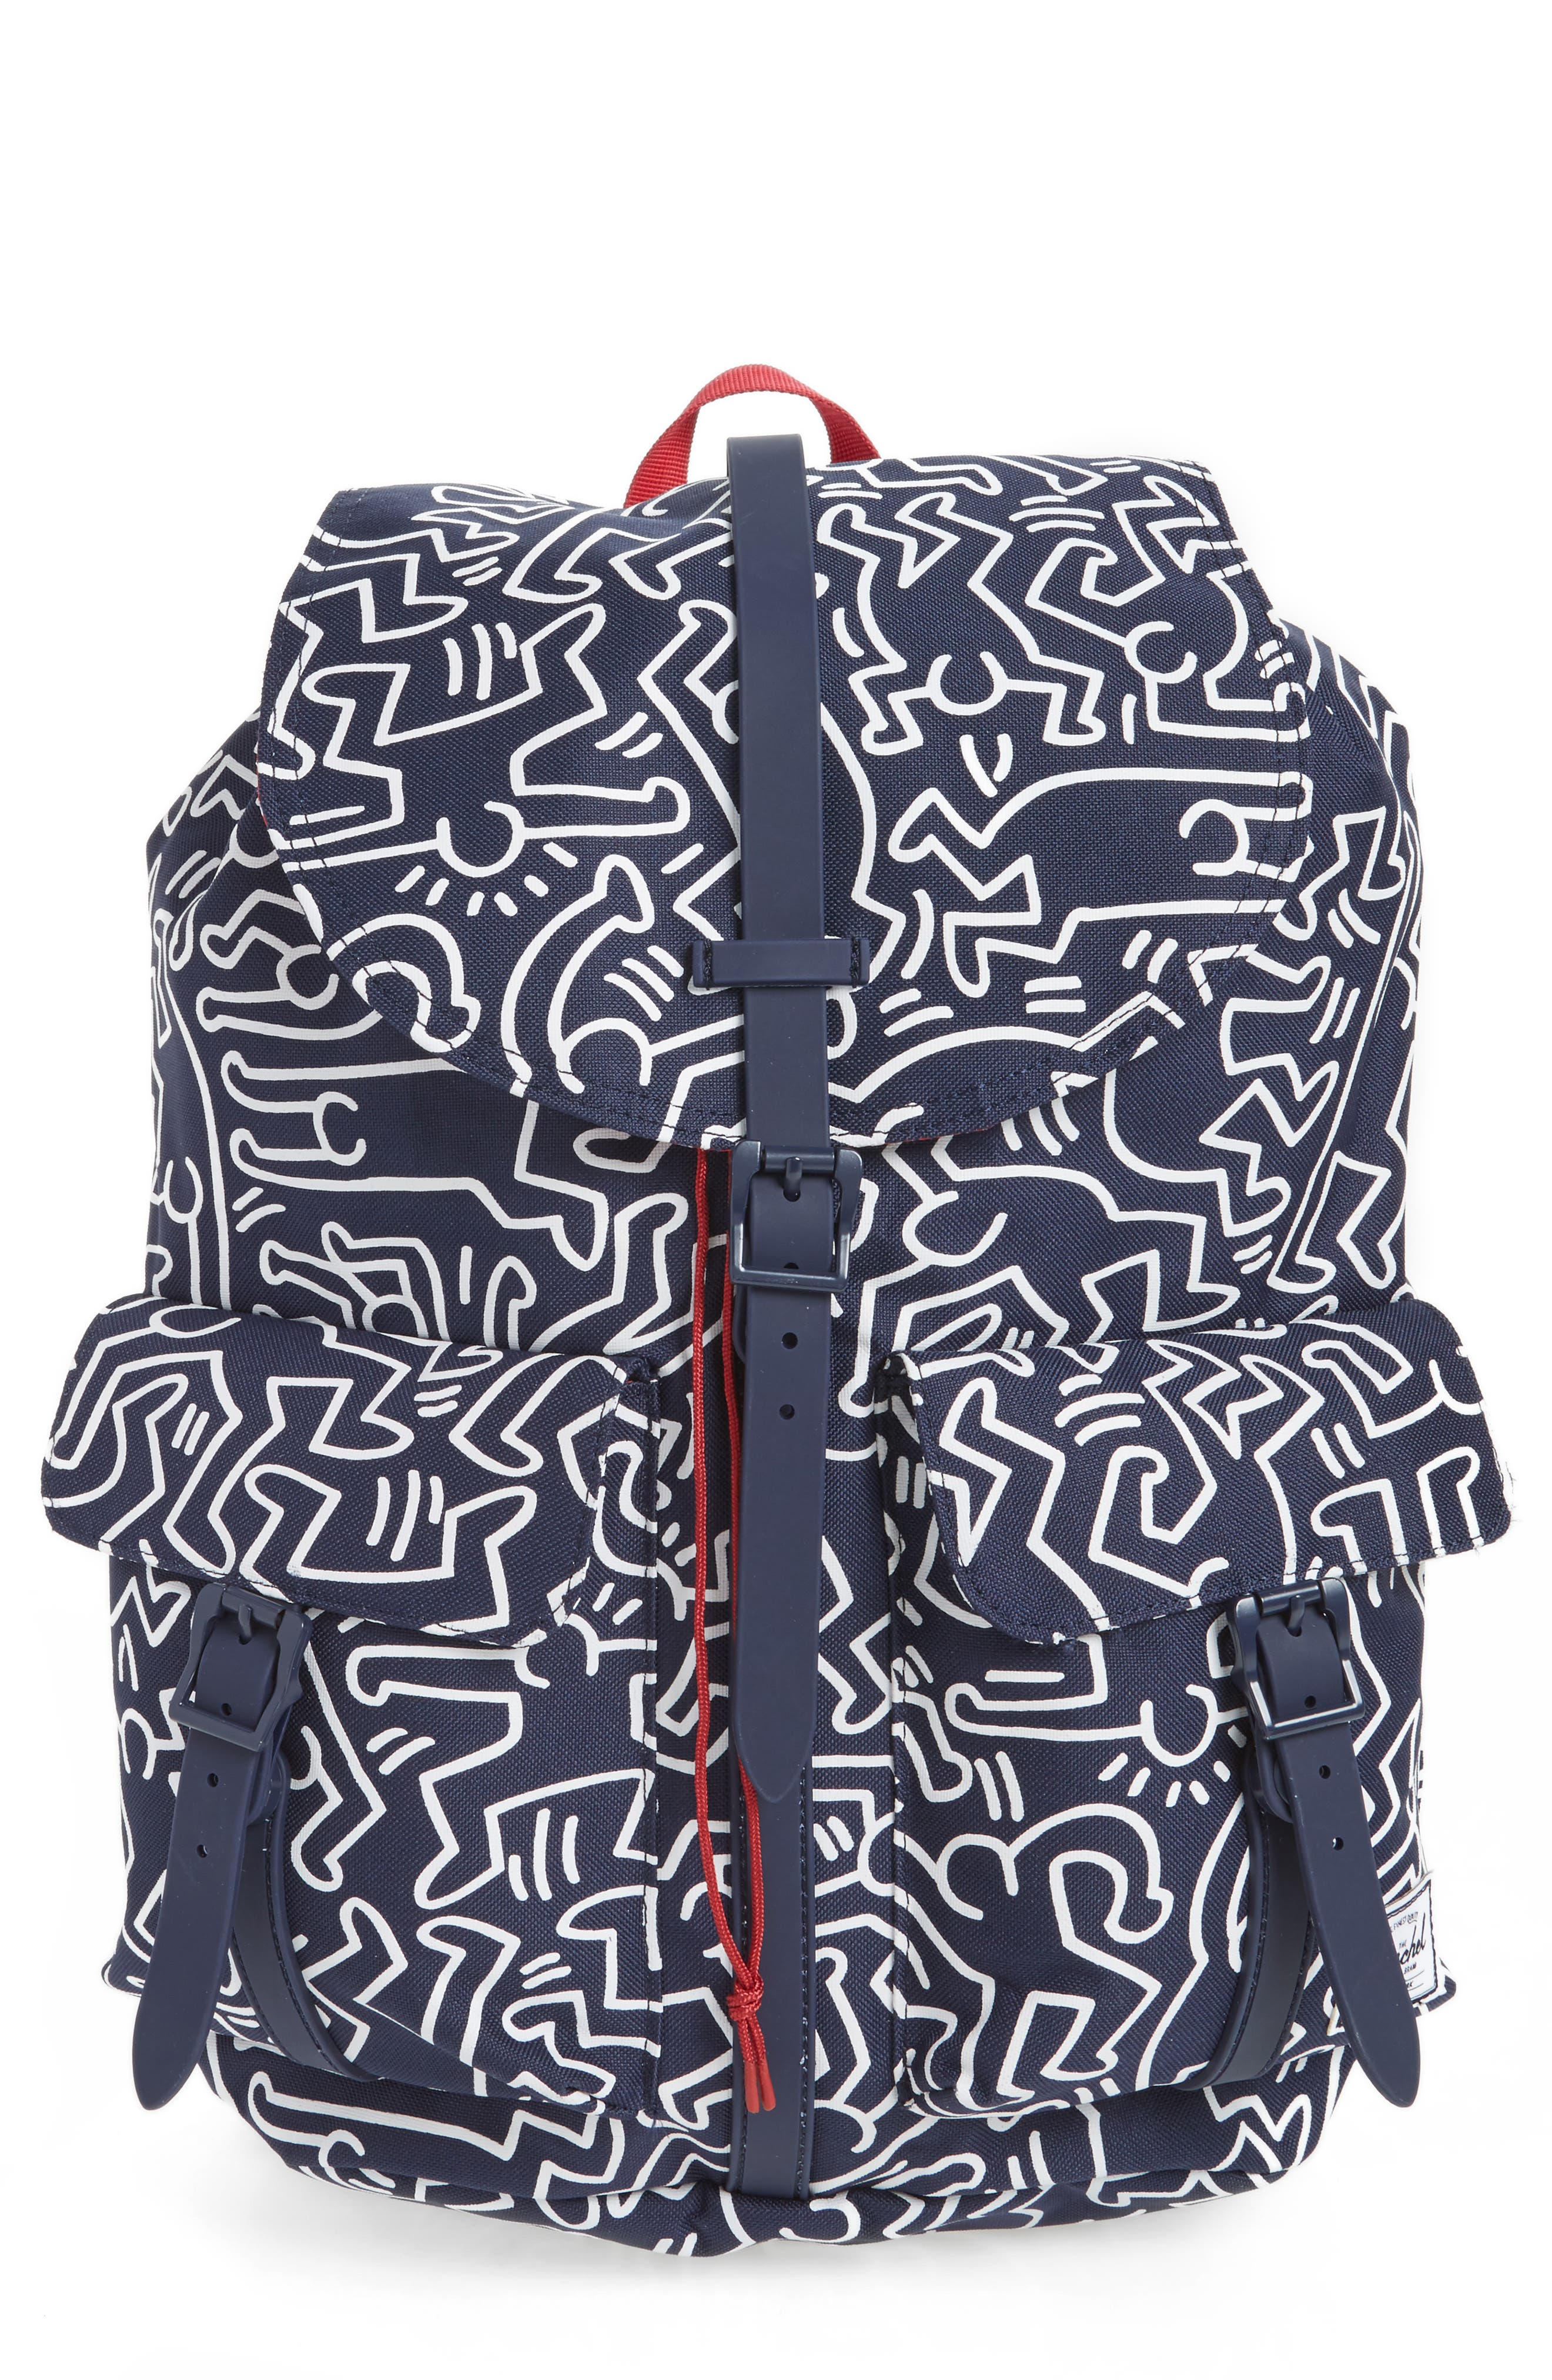 Herschel Supply Co. Dawson Keith Haring Backpack